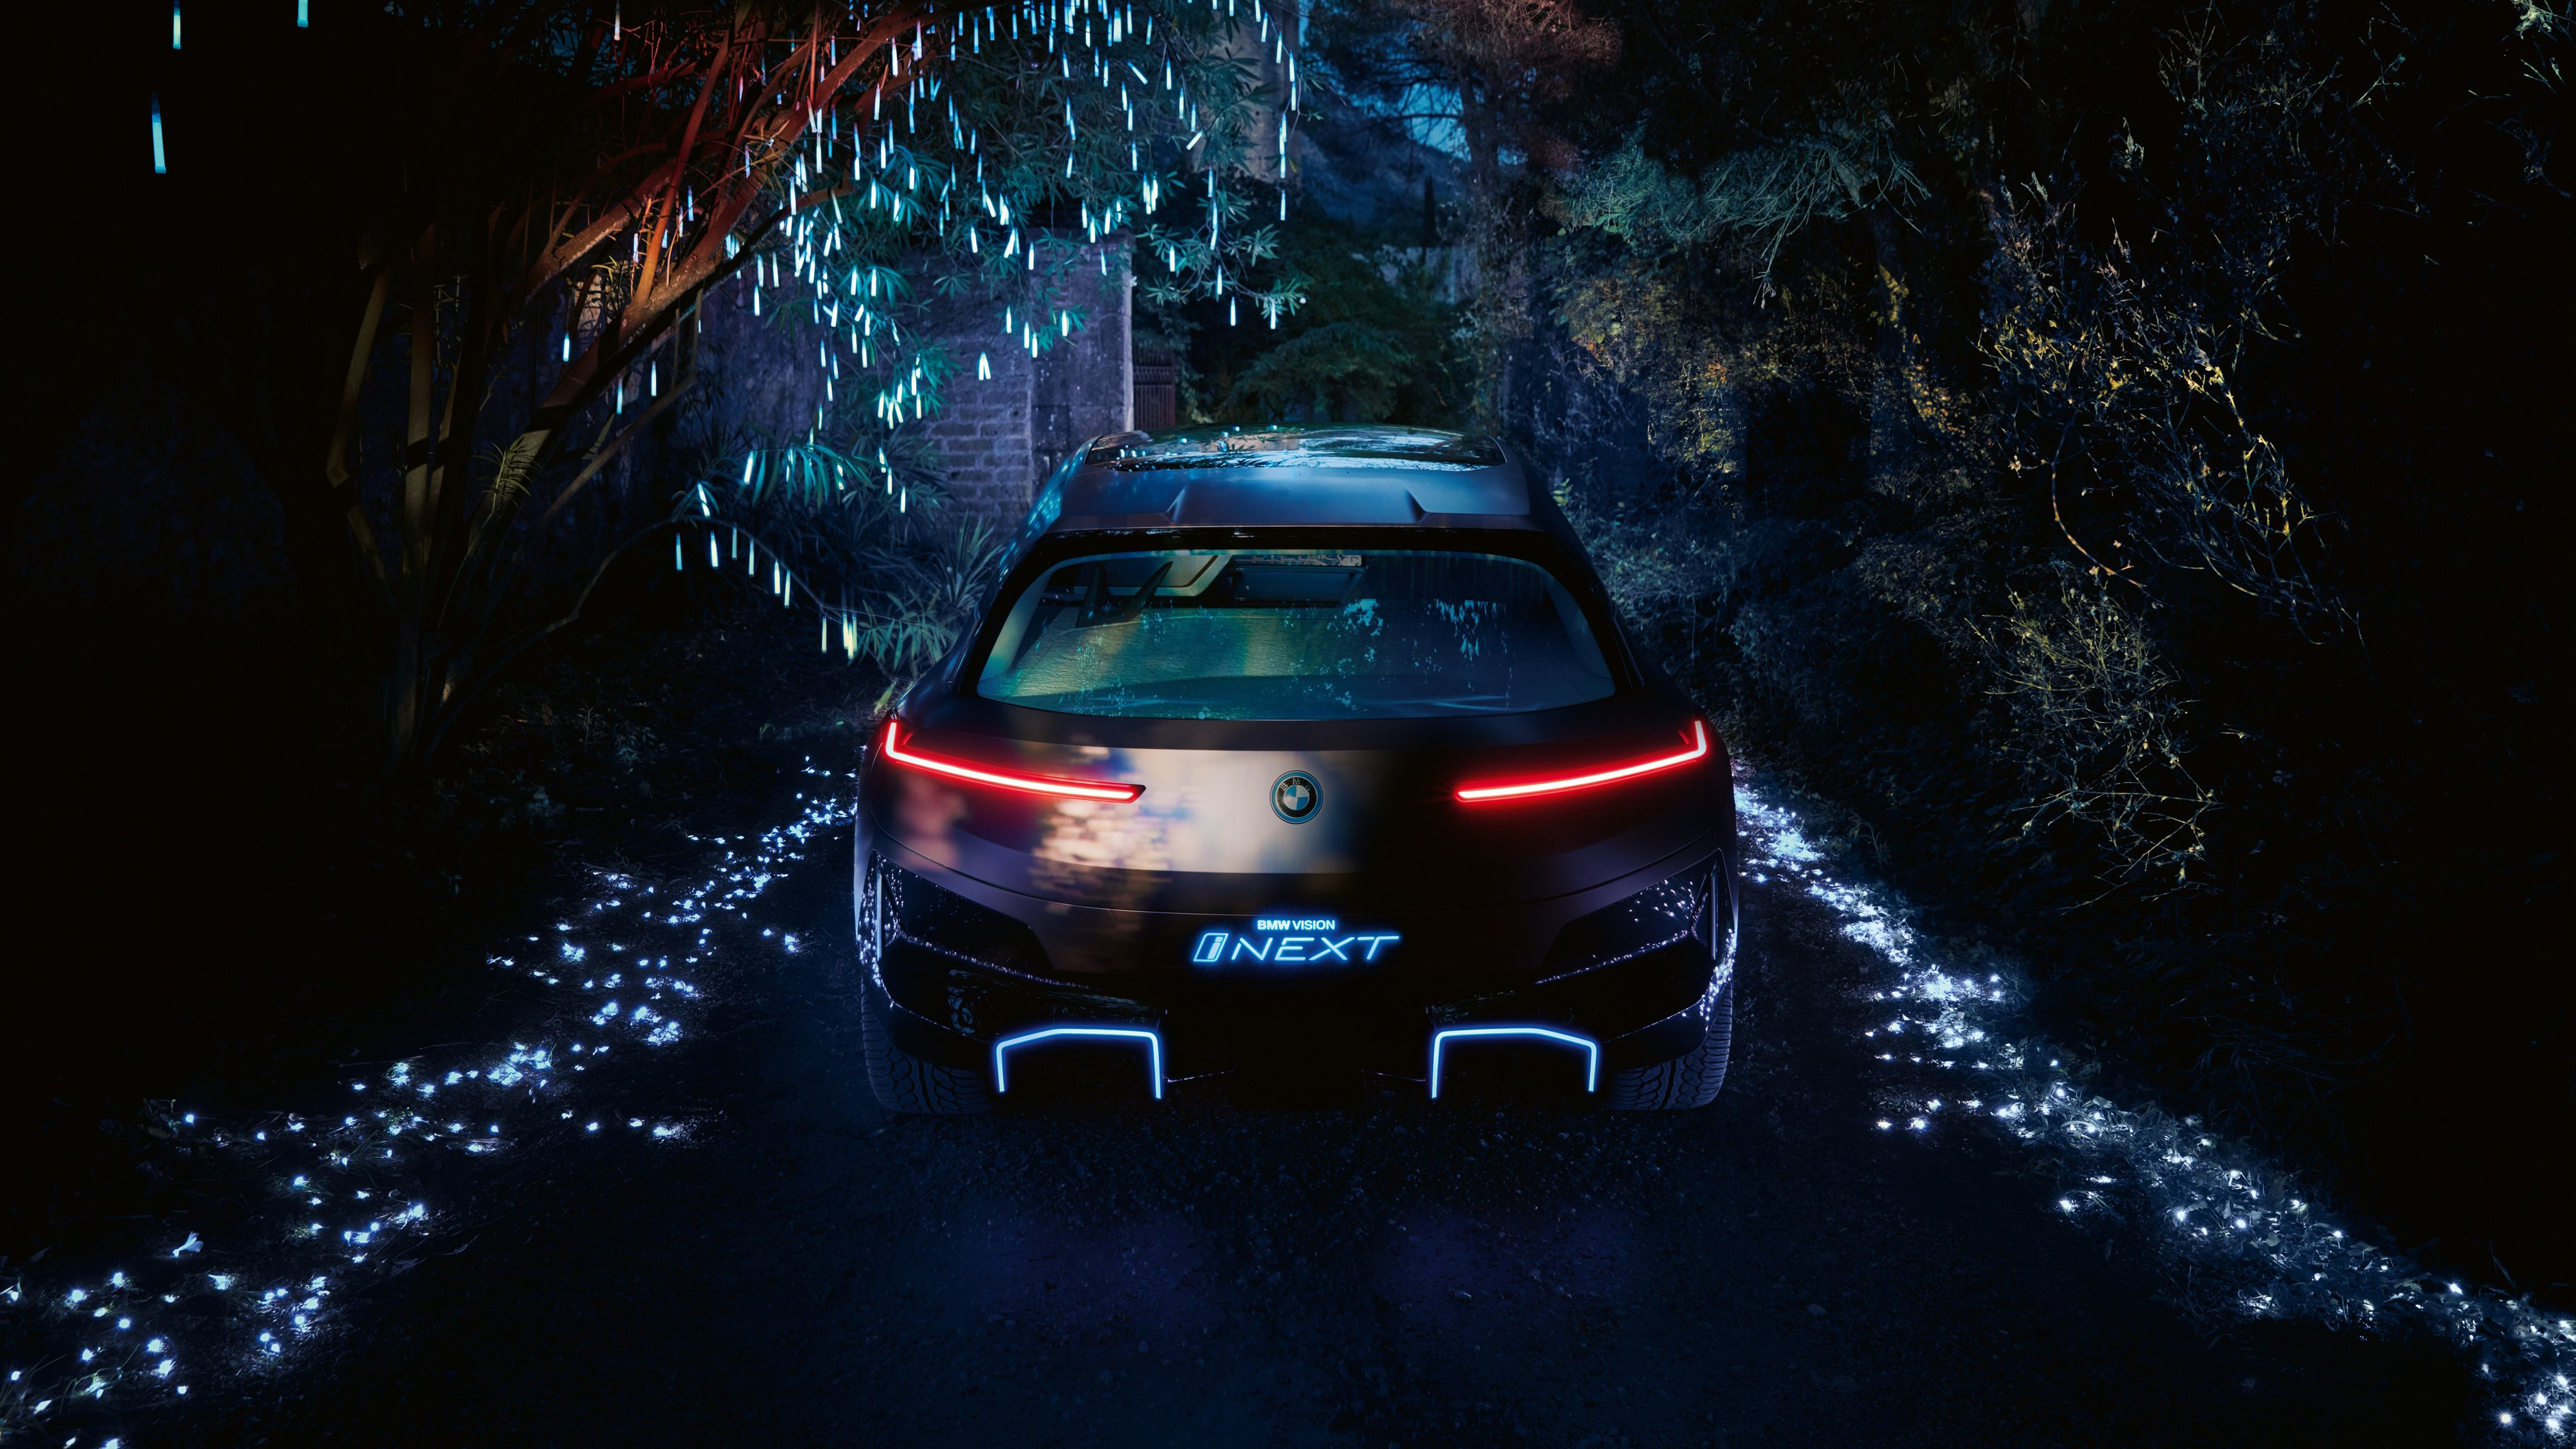 Bmw Future Wallpapers Top Free Bmw Future Backgrounds Wallpaperaccess Bmw vision inext 2019 4k 3 wallpaper